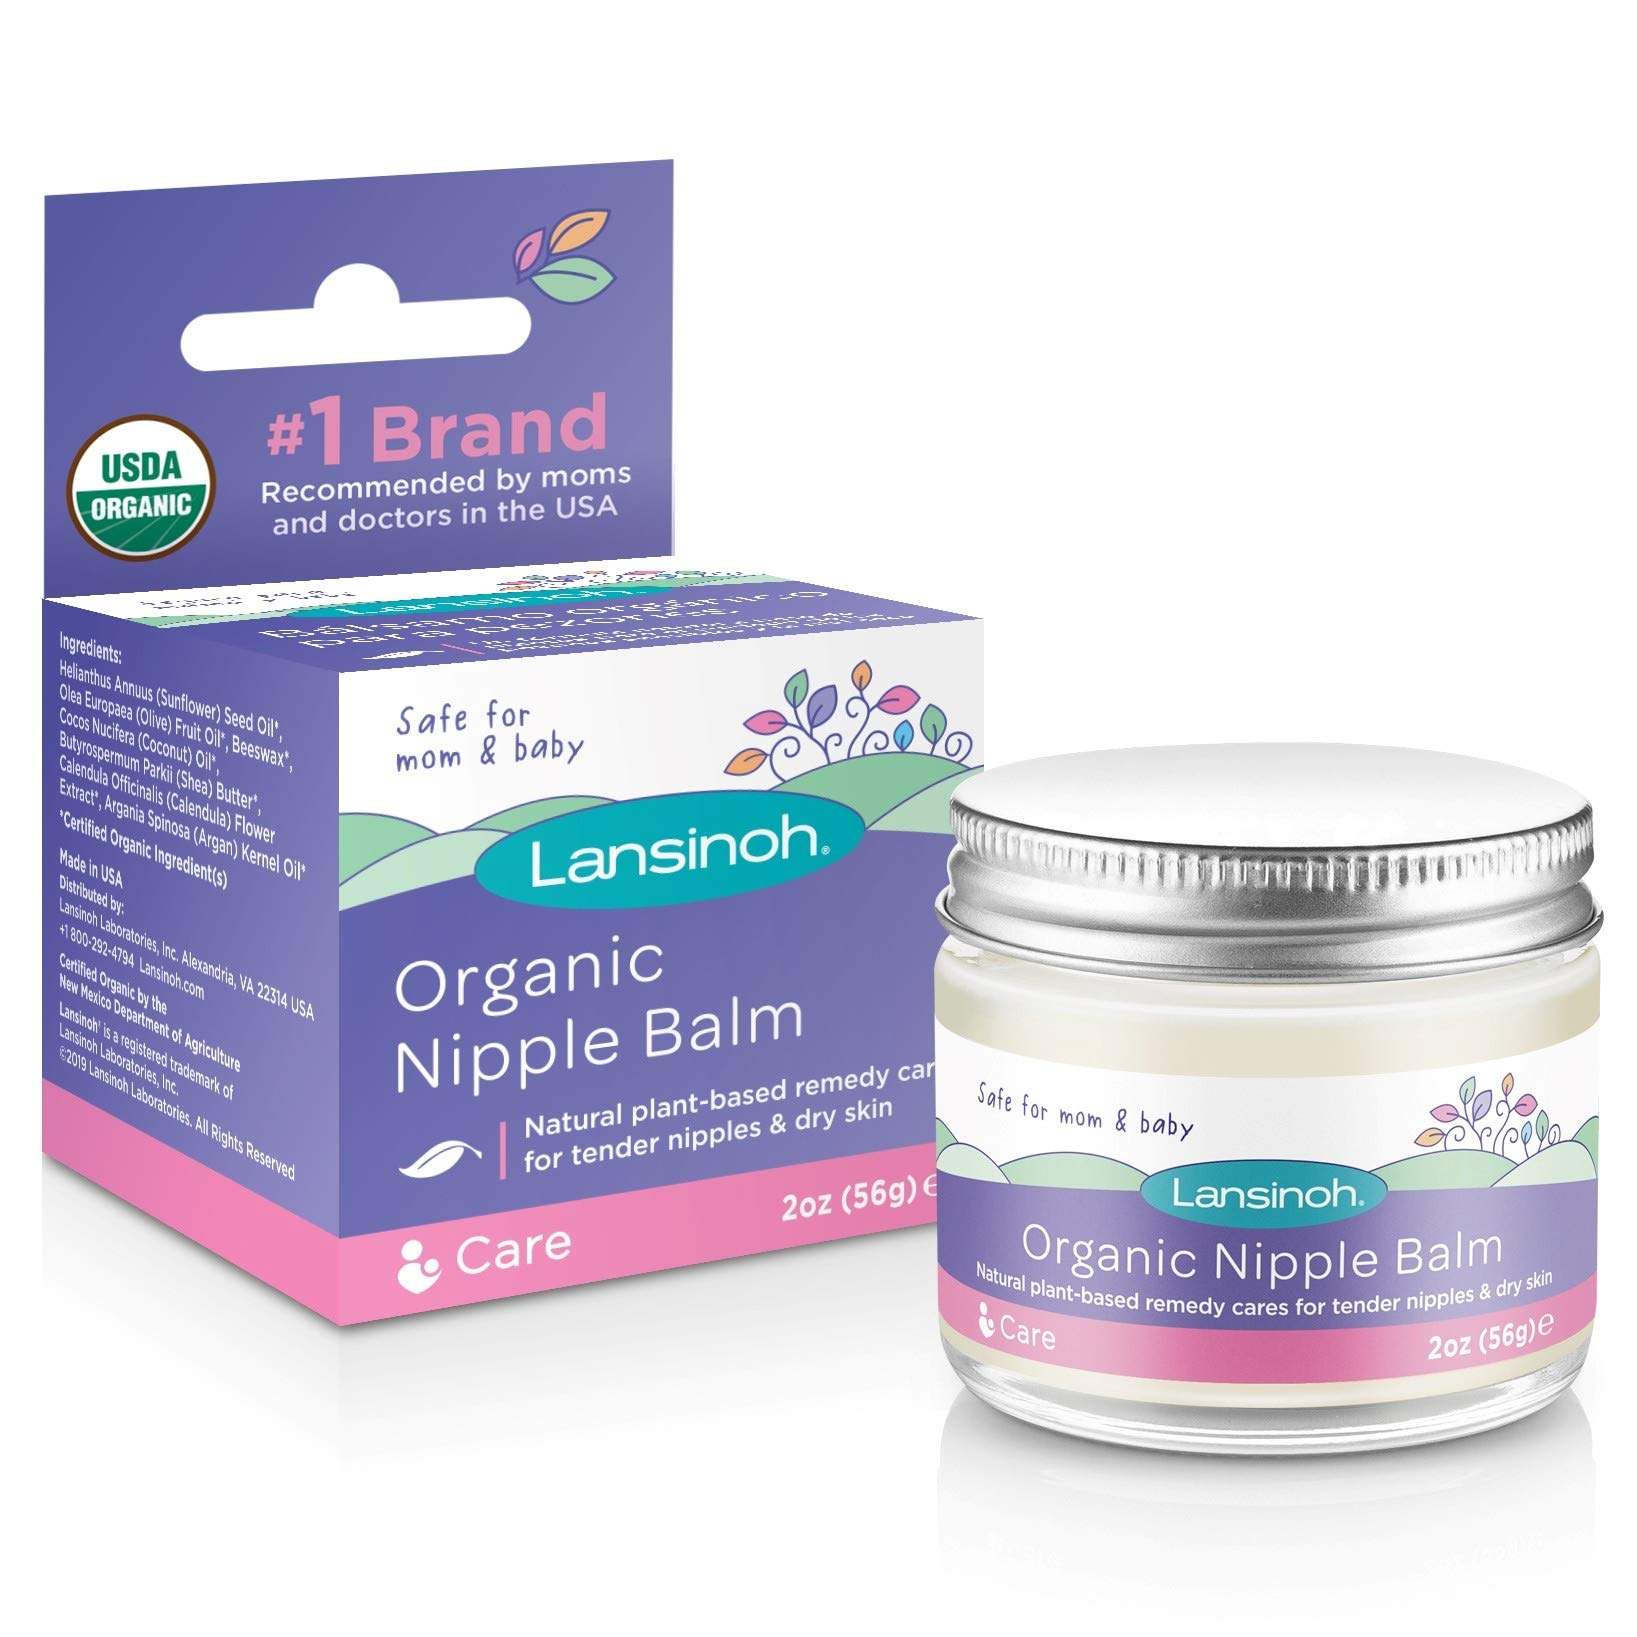 Lansinoh Organic Nipple Cream for Breastfeeding, 2 Ounces by Lansinoh